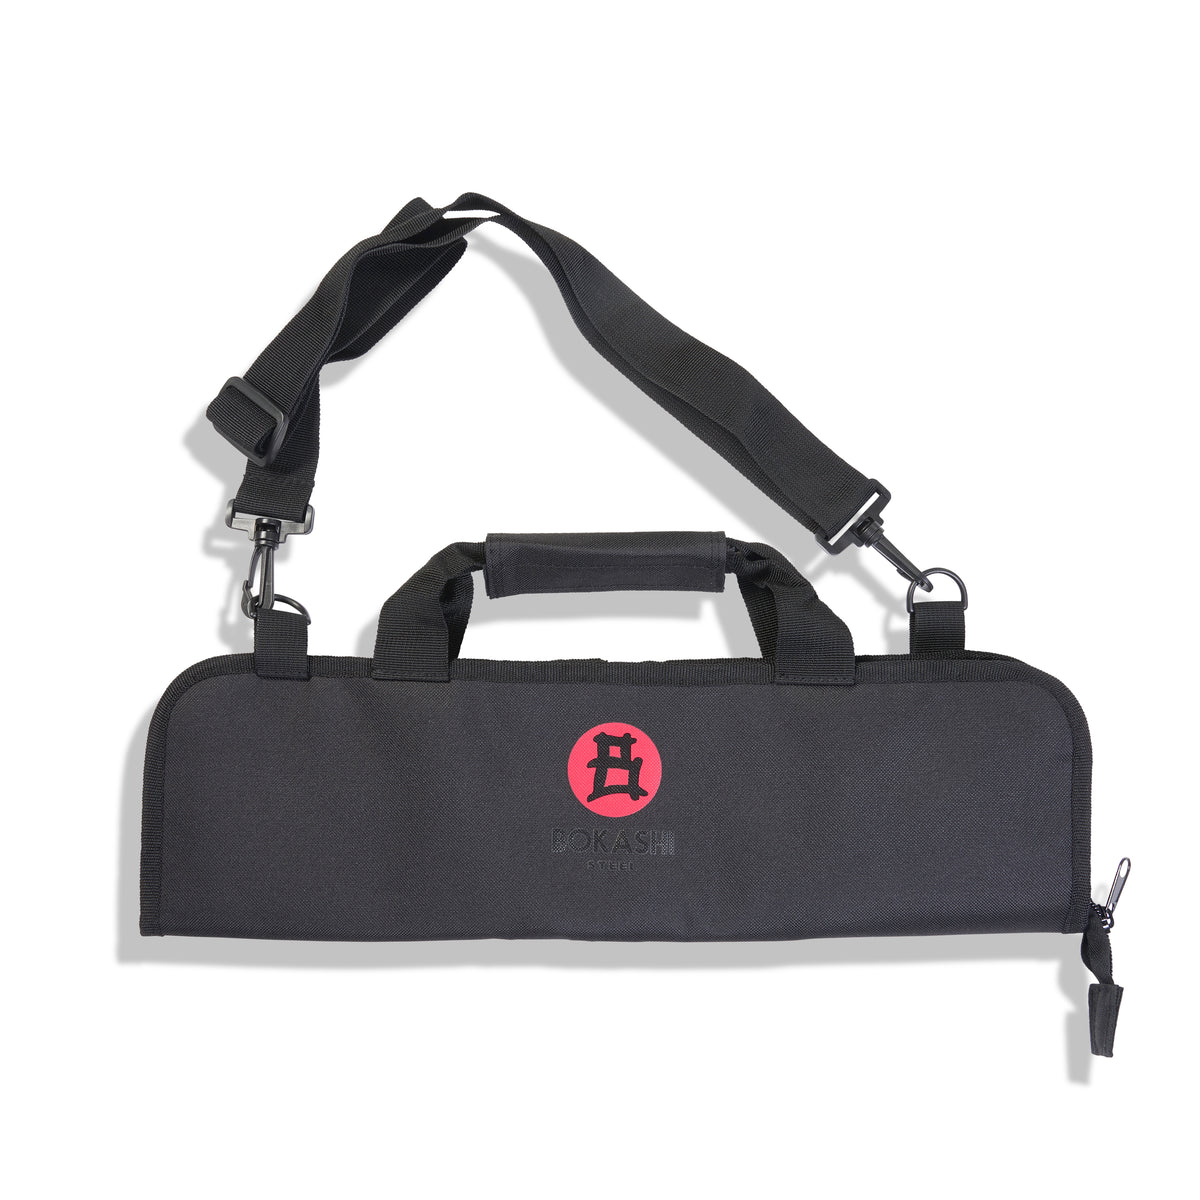 Bokashi Steel Professional 6 Pocket Knife Roll Bag